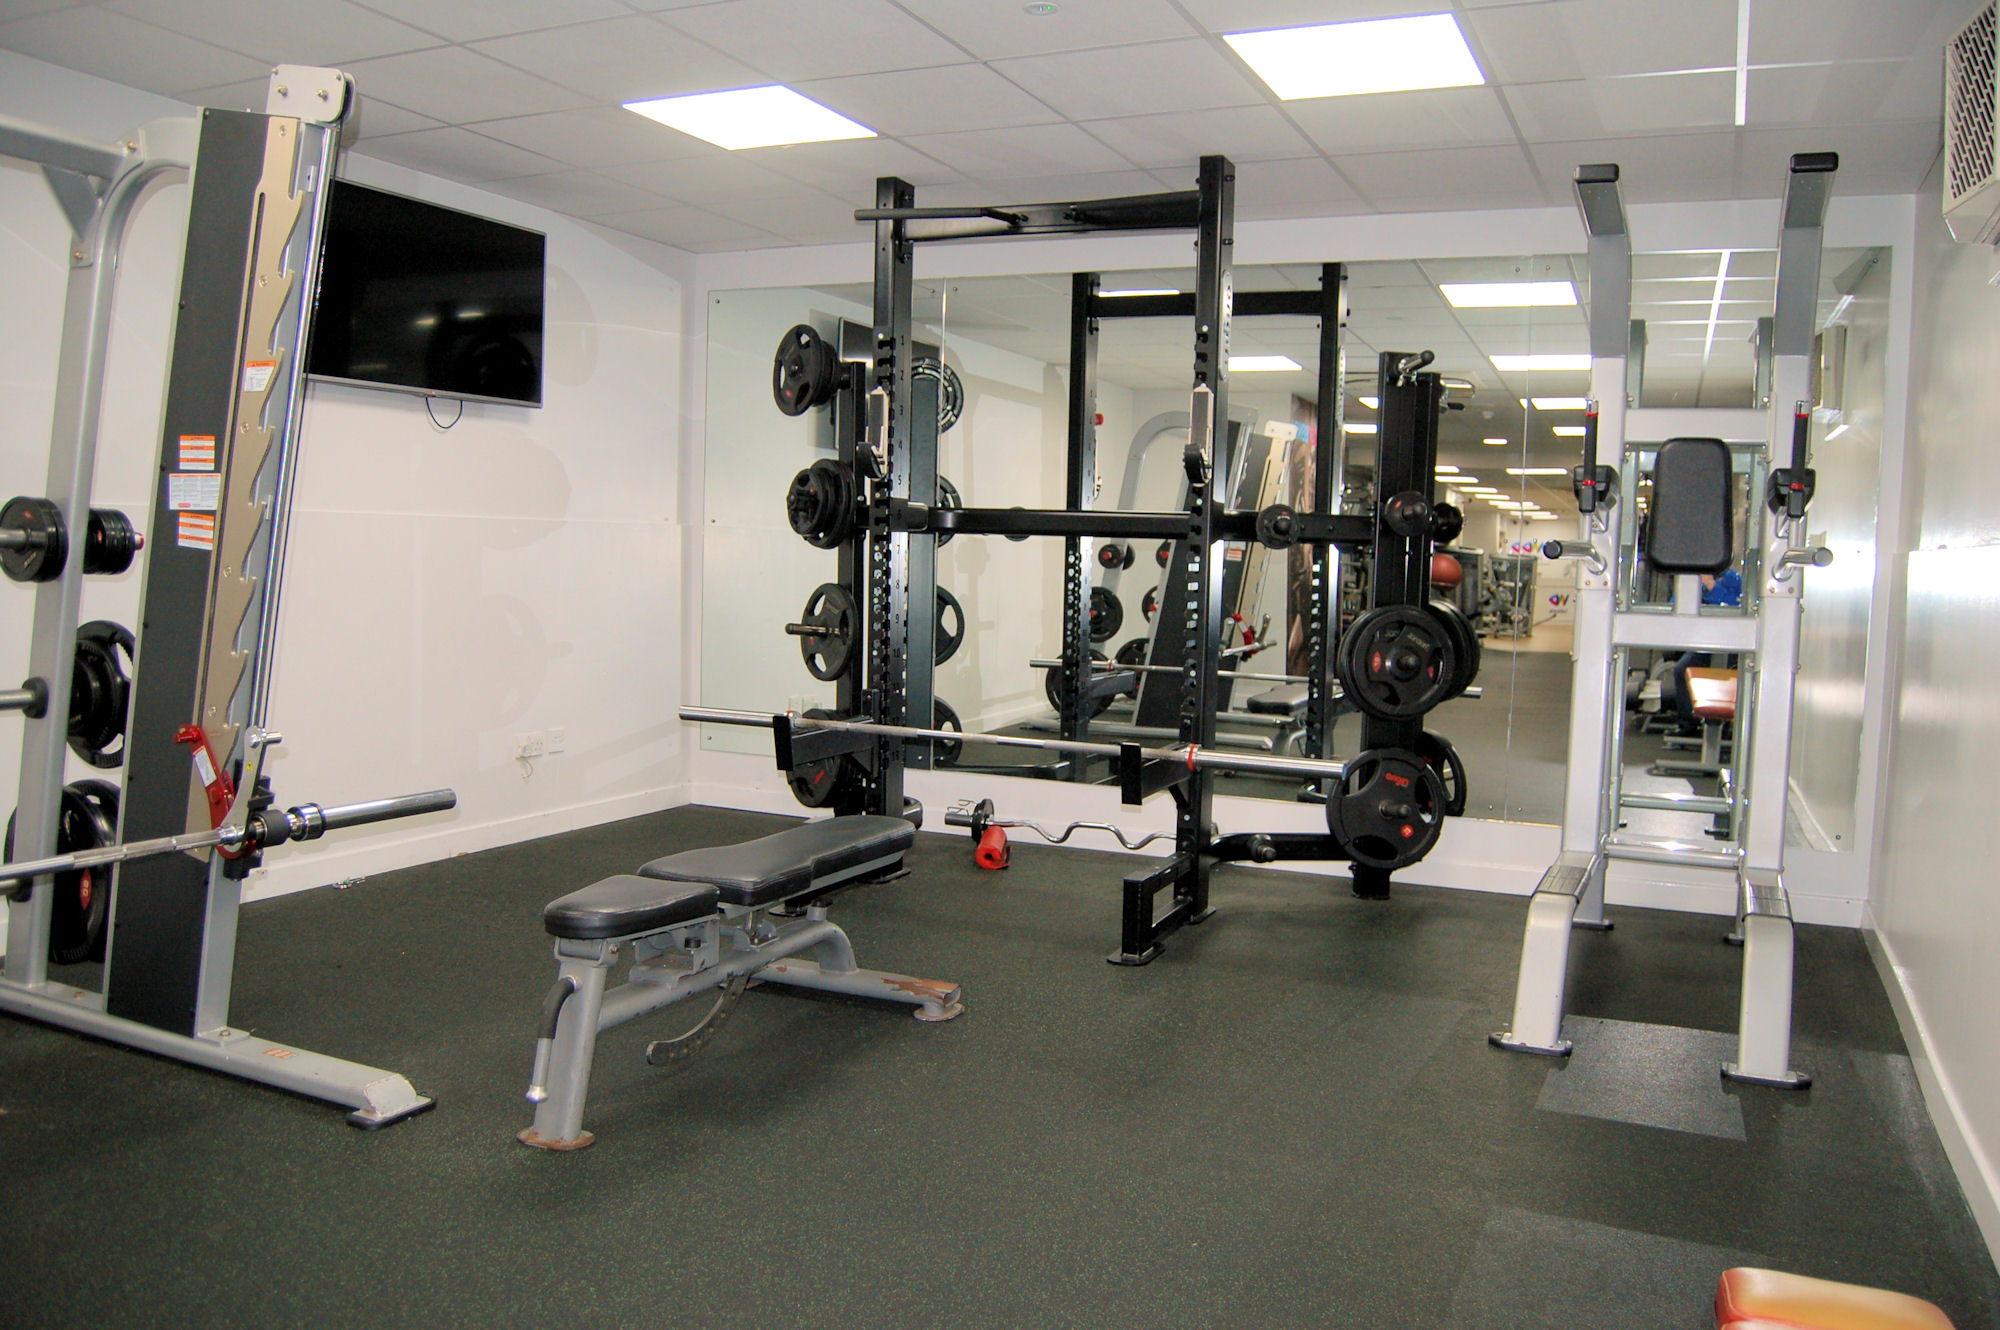 image of Dumbbells at Vale Pool gym